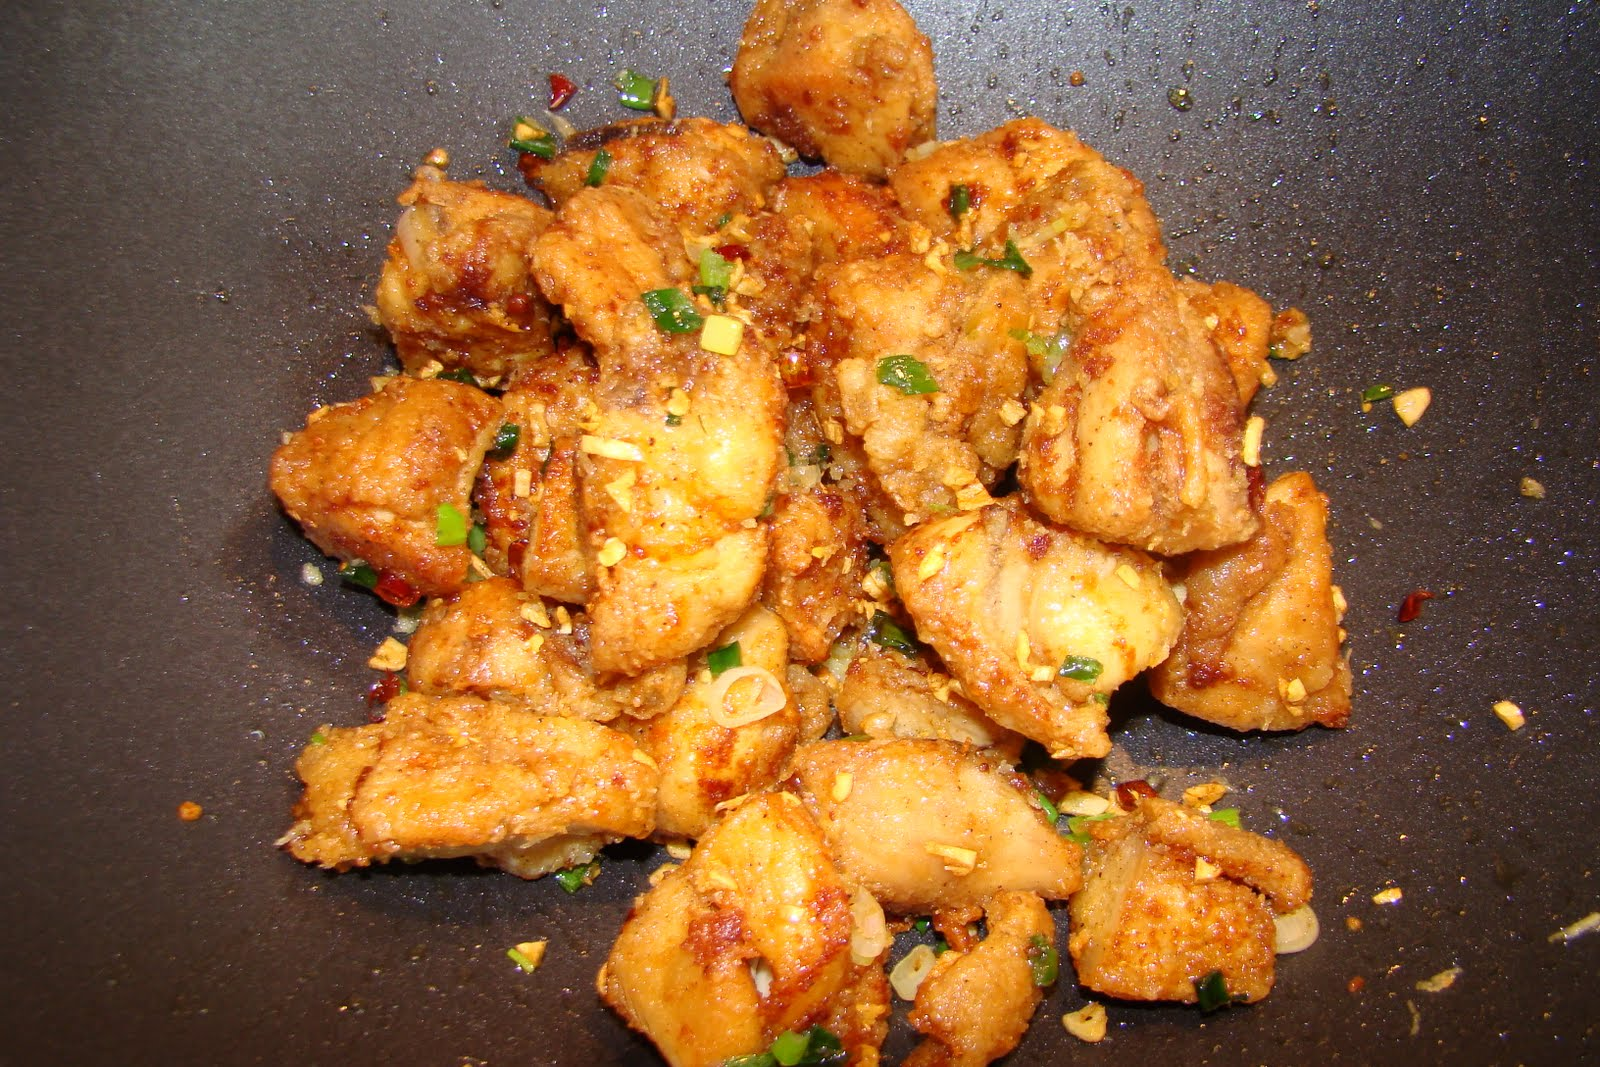 ... salt and pepper chicken wings. So I decided to try it out using my